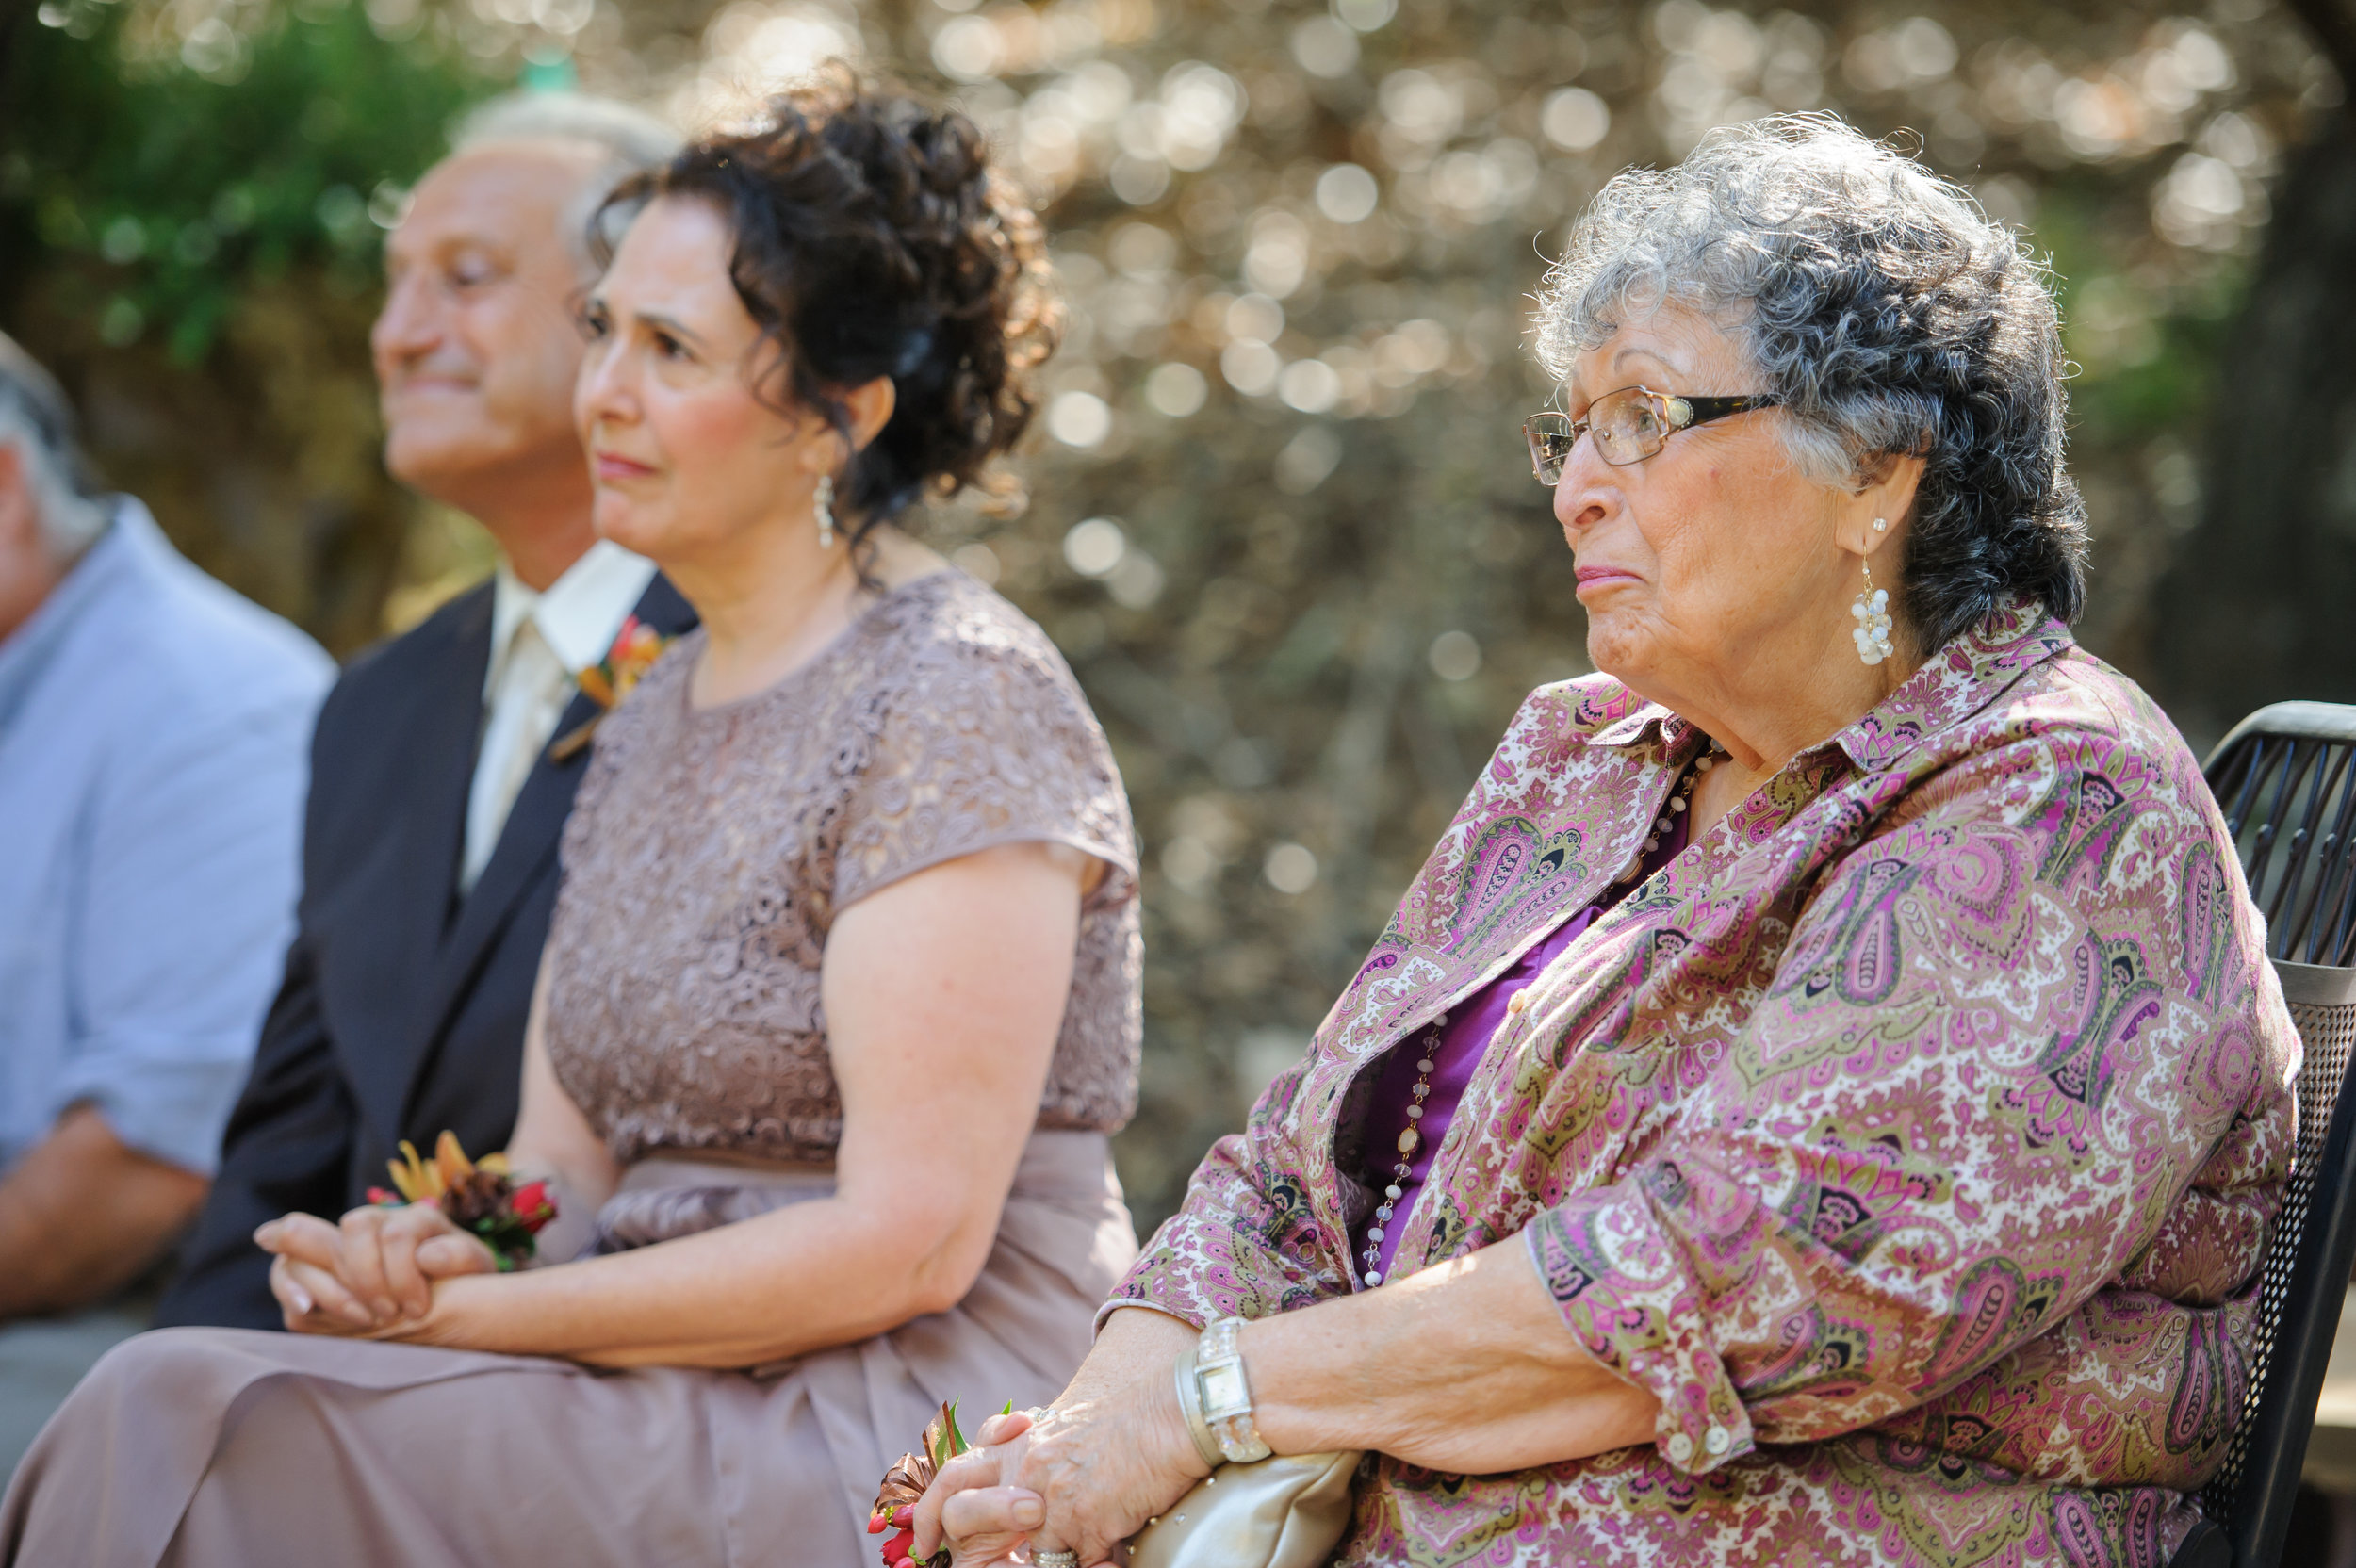 mara-chris-028-backyard-sonoma-wedding-photographer-katherine-nicole-photography.JPG